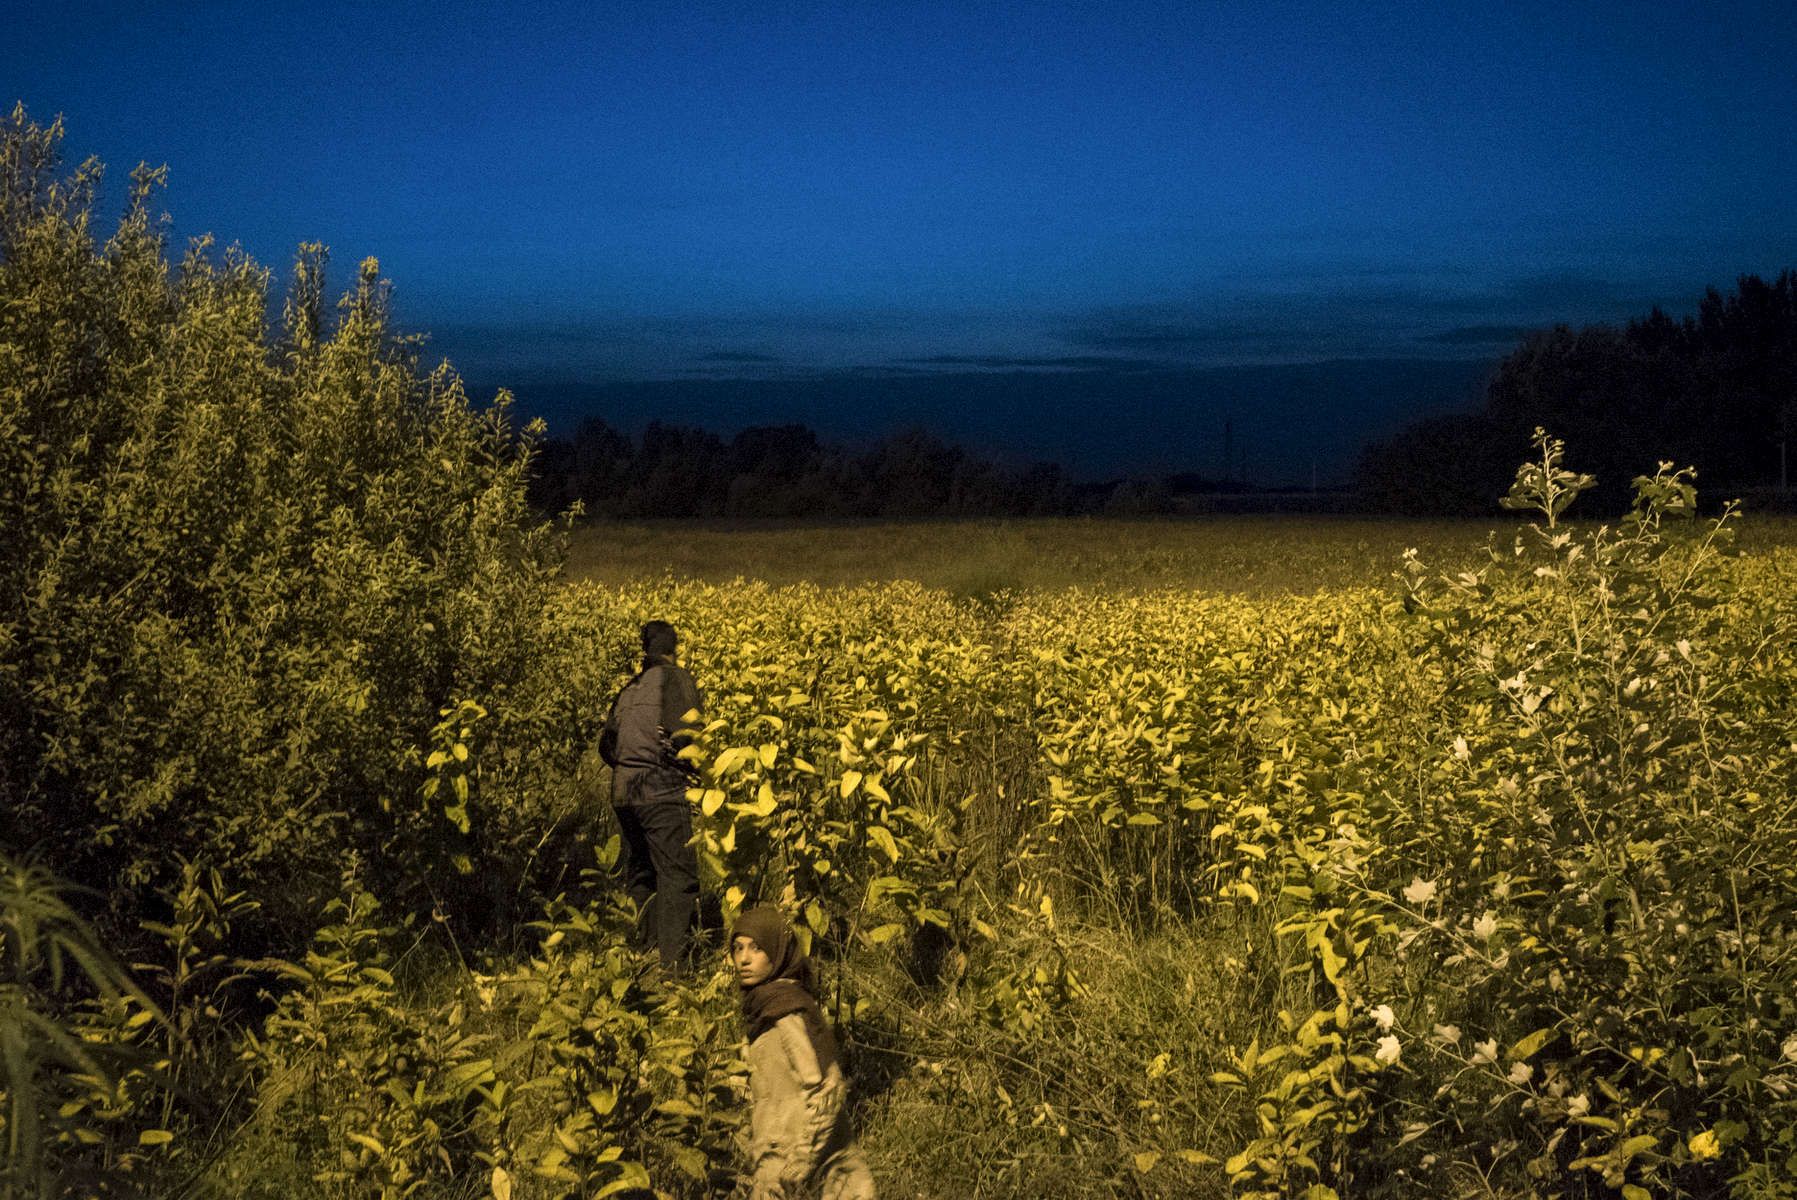 2015.  Horgos.  Serbia.  The closed Serbian-Hungarian border. The border had closed at midnight earlier that day, but thousands of migrants unaware of an alternative route hoped that it would be opened.  At the border fence thousands of migrants set up tents and demonstrated into the night while Hungarian police stood guard on the other side and shined their flashlights at the cameras of photographers attempting to photograph them. It quickly became clear that it wouldn't reopen and the next morning most pivoted towards Croatia.  There were clashes the next day at the border, and Hungarian riot police tear gassed dozens of migrants.